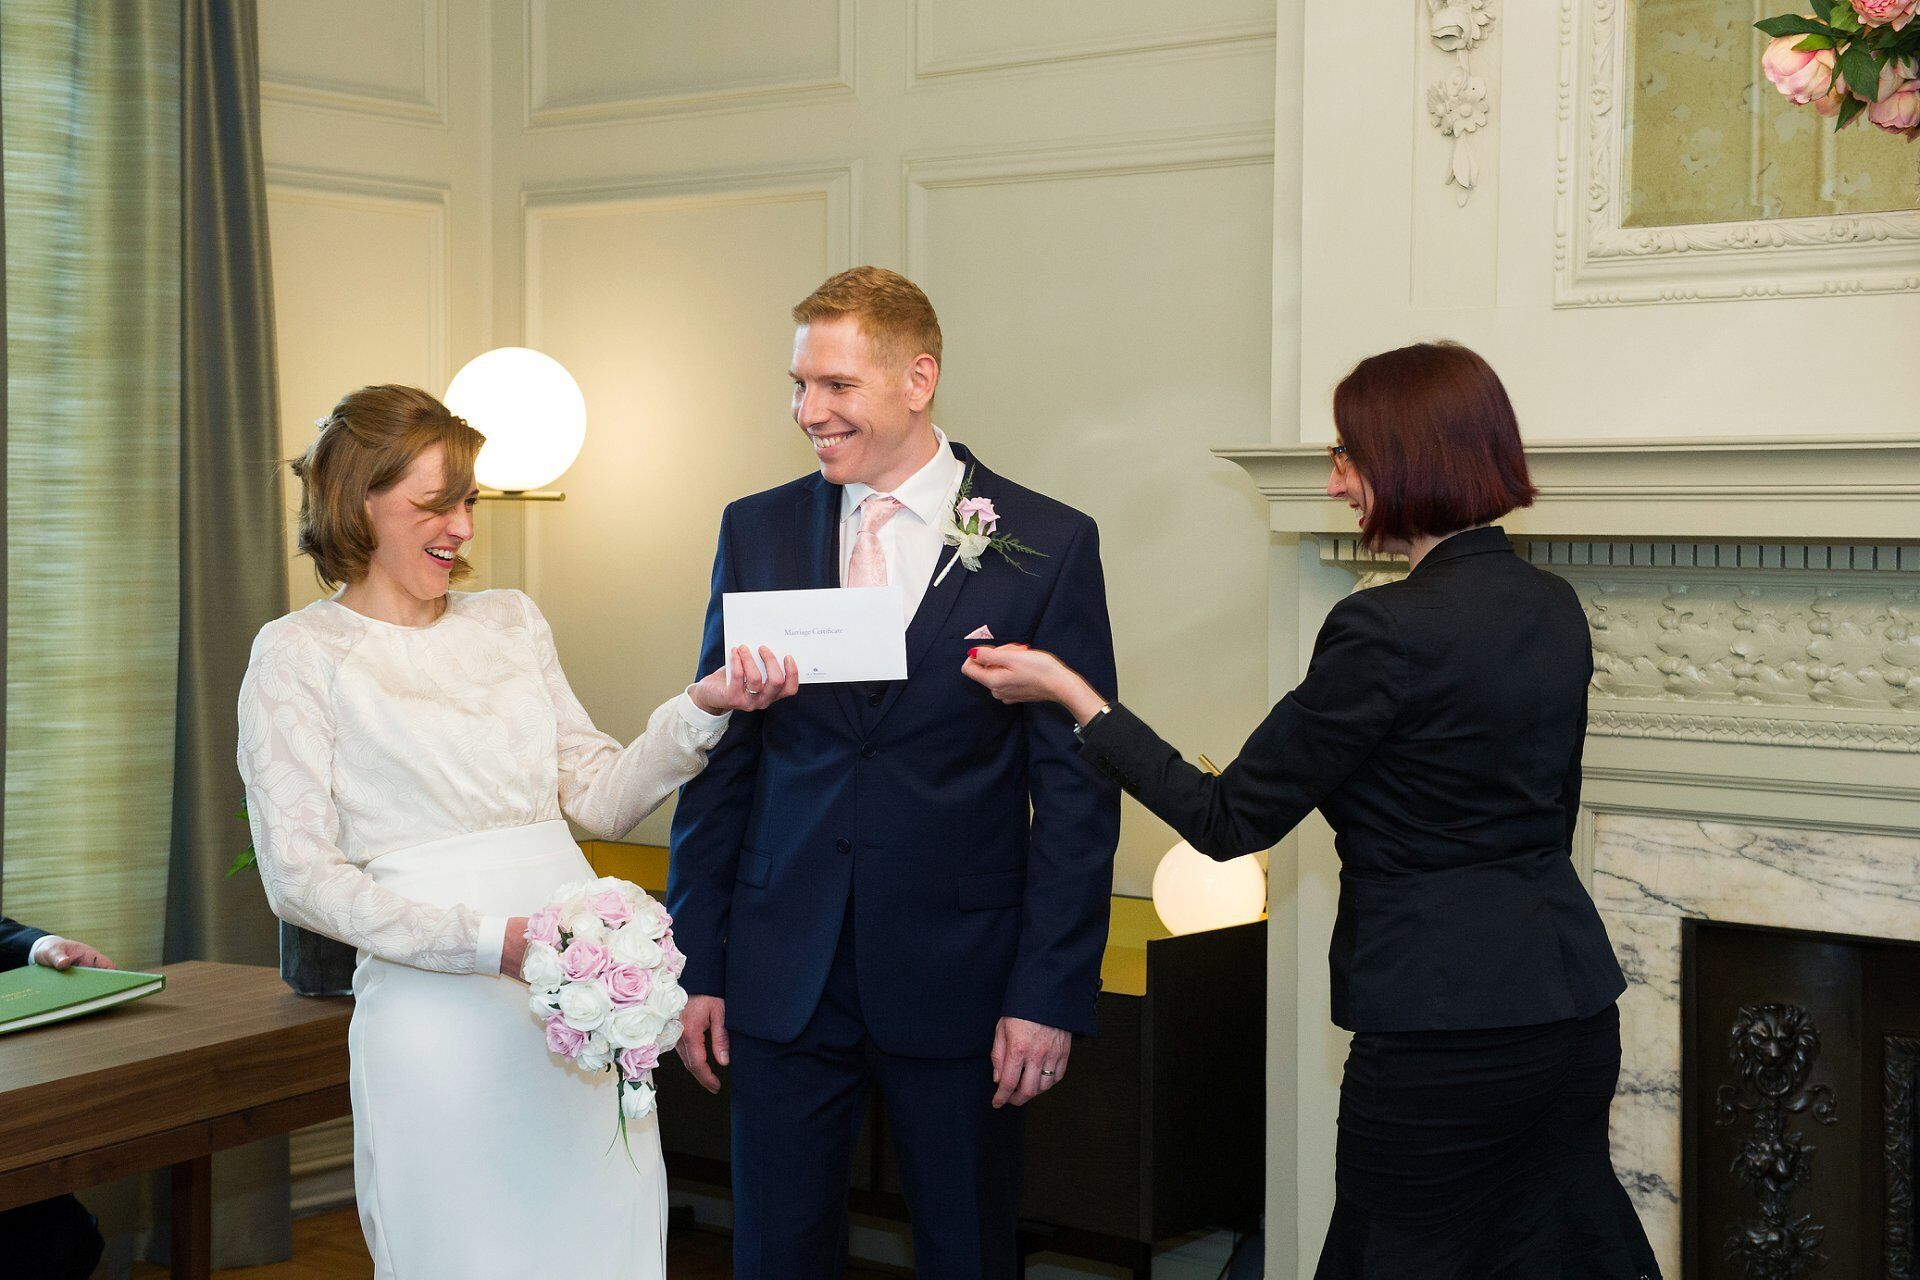 deputy superintendent registrar at westminster register office wedding hands over the marriage certificate to the laughing bride